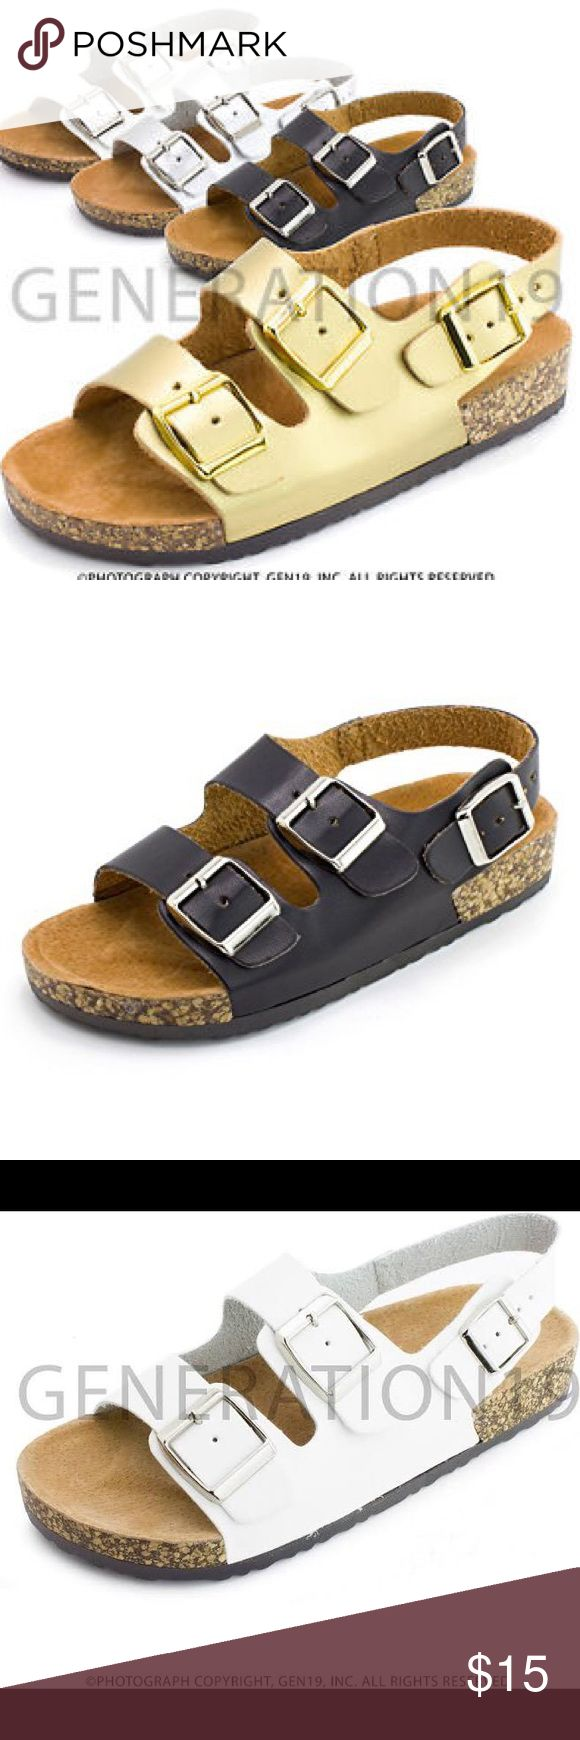 Kids Birkenstock LookAlike Slides AVAILABLE IN GOLD, WHITE, BLACK. I have sizes from 8-3. Comes from nonsmoking pet free home. WILL SHIP SAME OR NEXT DAY (depending on time). Comes with box & original packaging! True to size. Has a back strap for kids so they won't lose their shoes! Very comfortable for them :) please lemme know in the comments below which size & color & I will ship those for you! Please purchase thru this listing :) Kali Shoes Sandals & Flip Flops